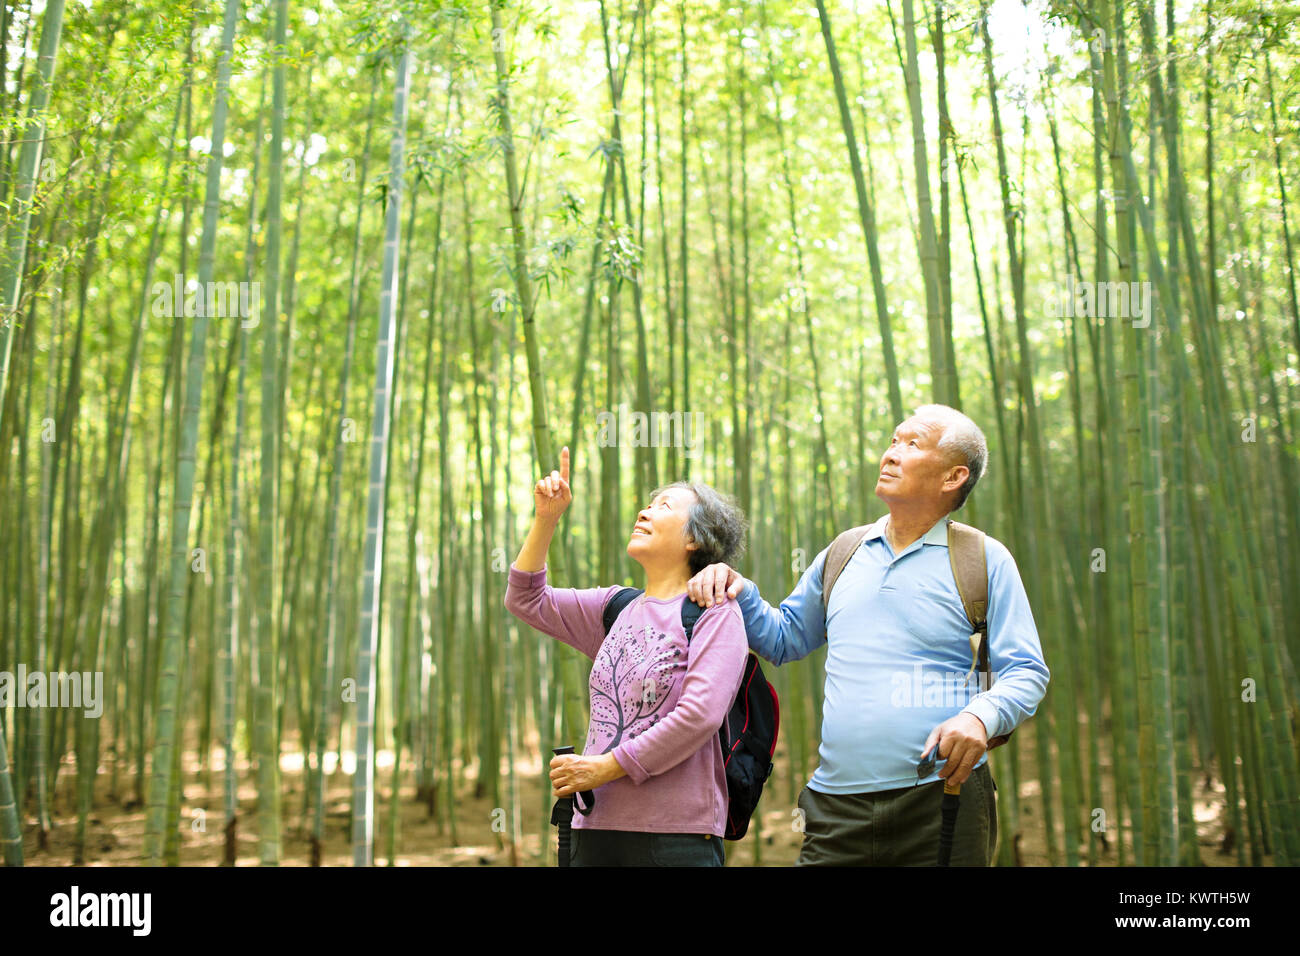 Senior Couple hiking in green bamboo forest - Stock Image